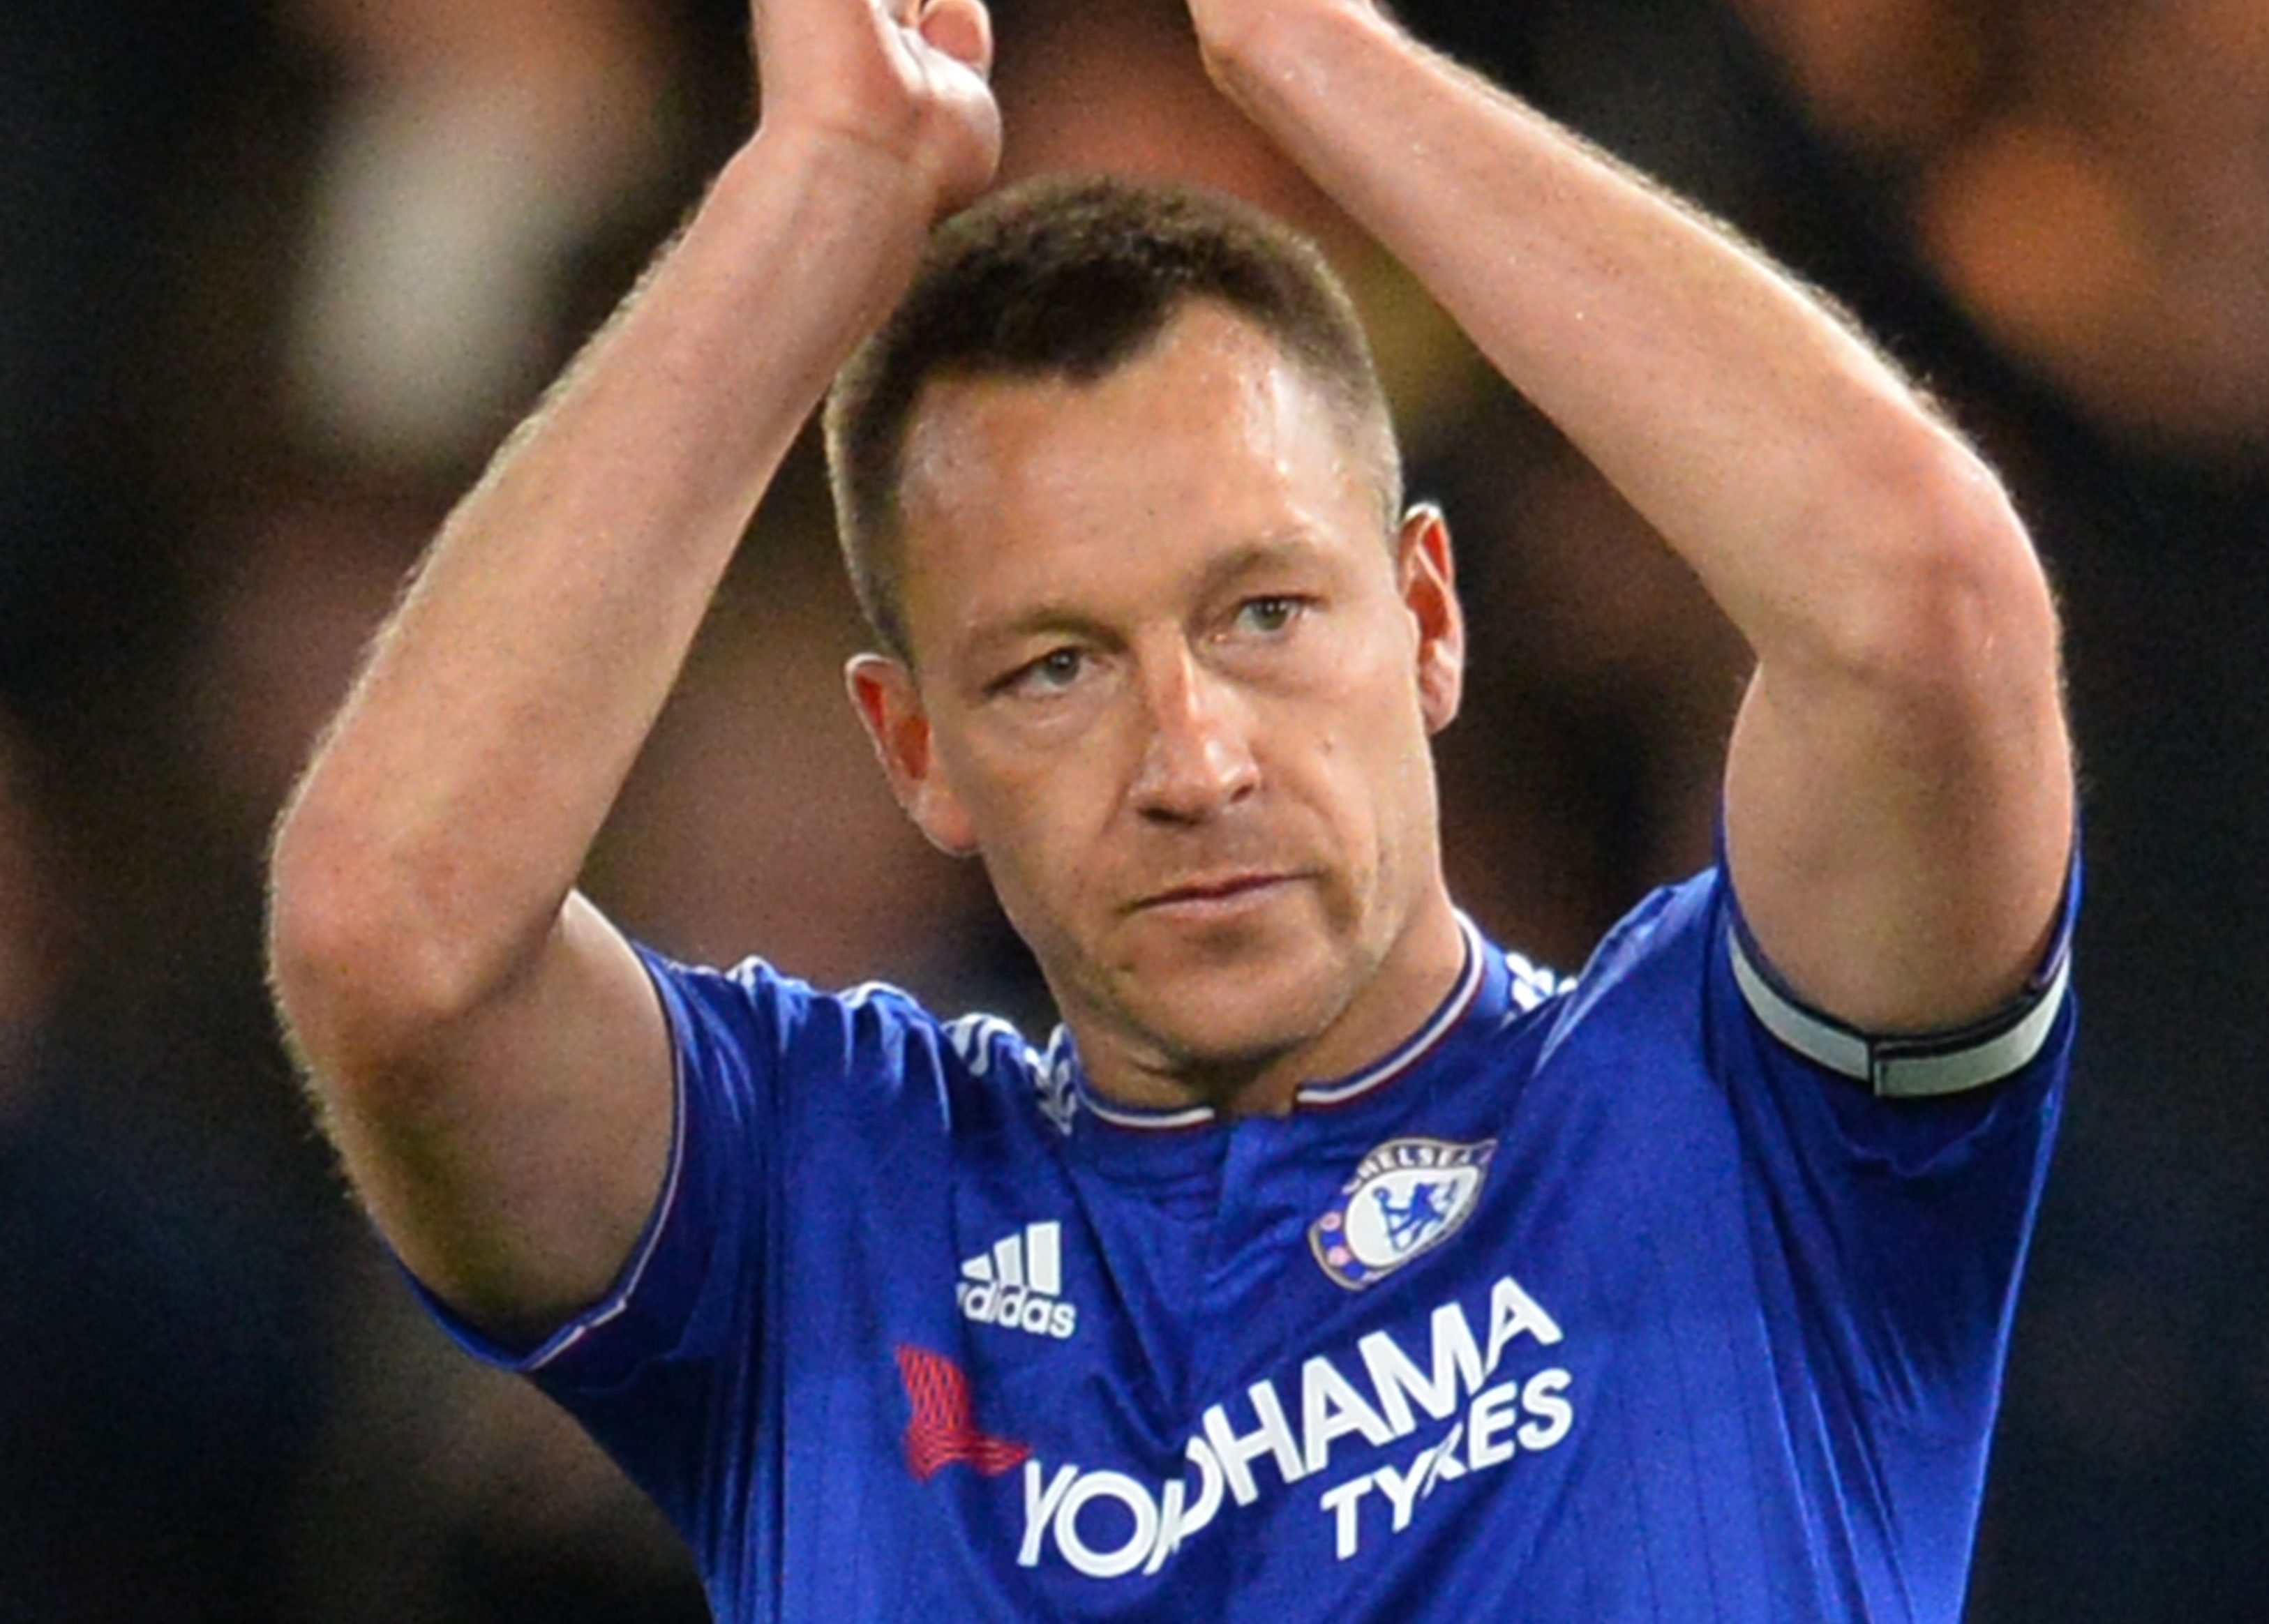 Chelsea's English defender John Terry applauds at the end of the English Premier League football match between Chelsea and Tottenham Hotspur at Stamford Bridge in London on May 2, 2016. / AFP / GLYN KIRK / RESTRICTED TO EDITORIAL USE. No use with unauthorized audio, video, data, fixture lists, club/league logos or 'live' services. Online in-match use limited to 75 images, no video emulation. No use in betting, games or single club/league/player publications. / (Photo credit should read GLYN KIRK/AFP/Getty Images)